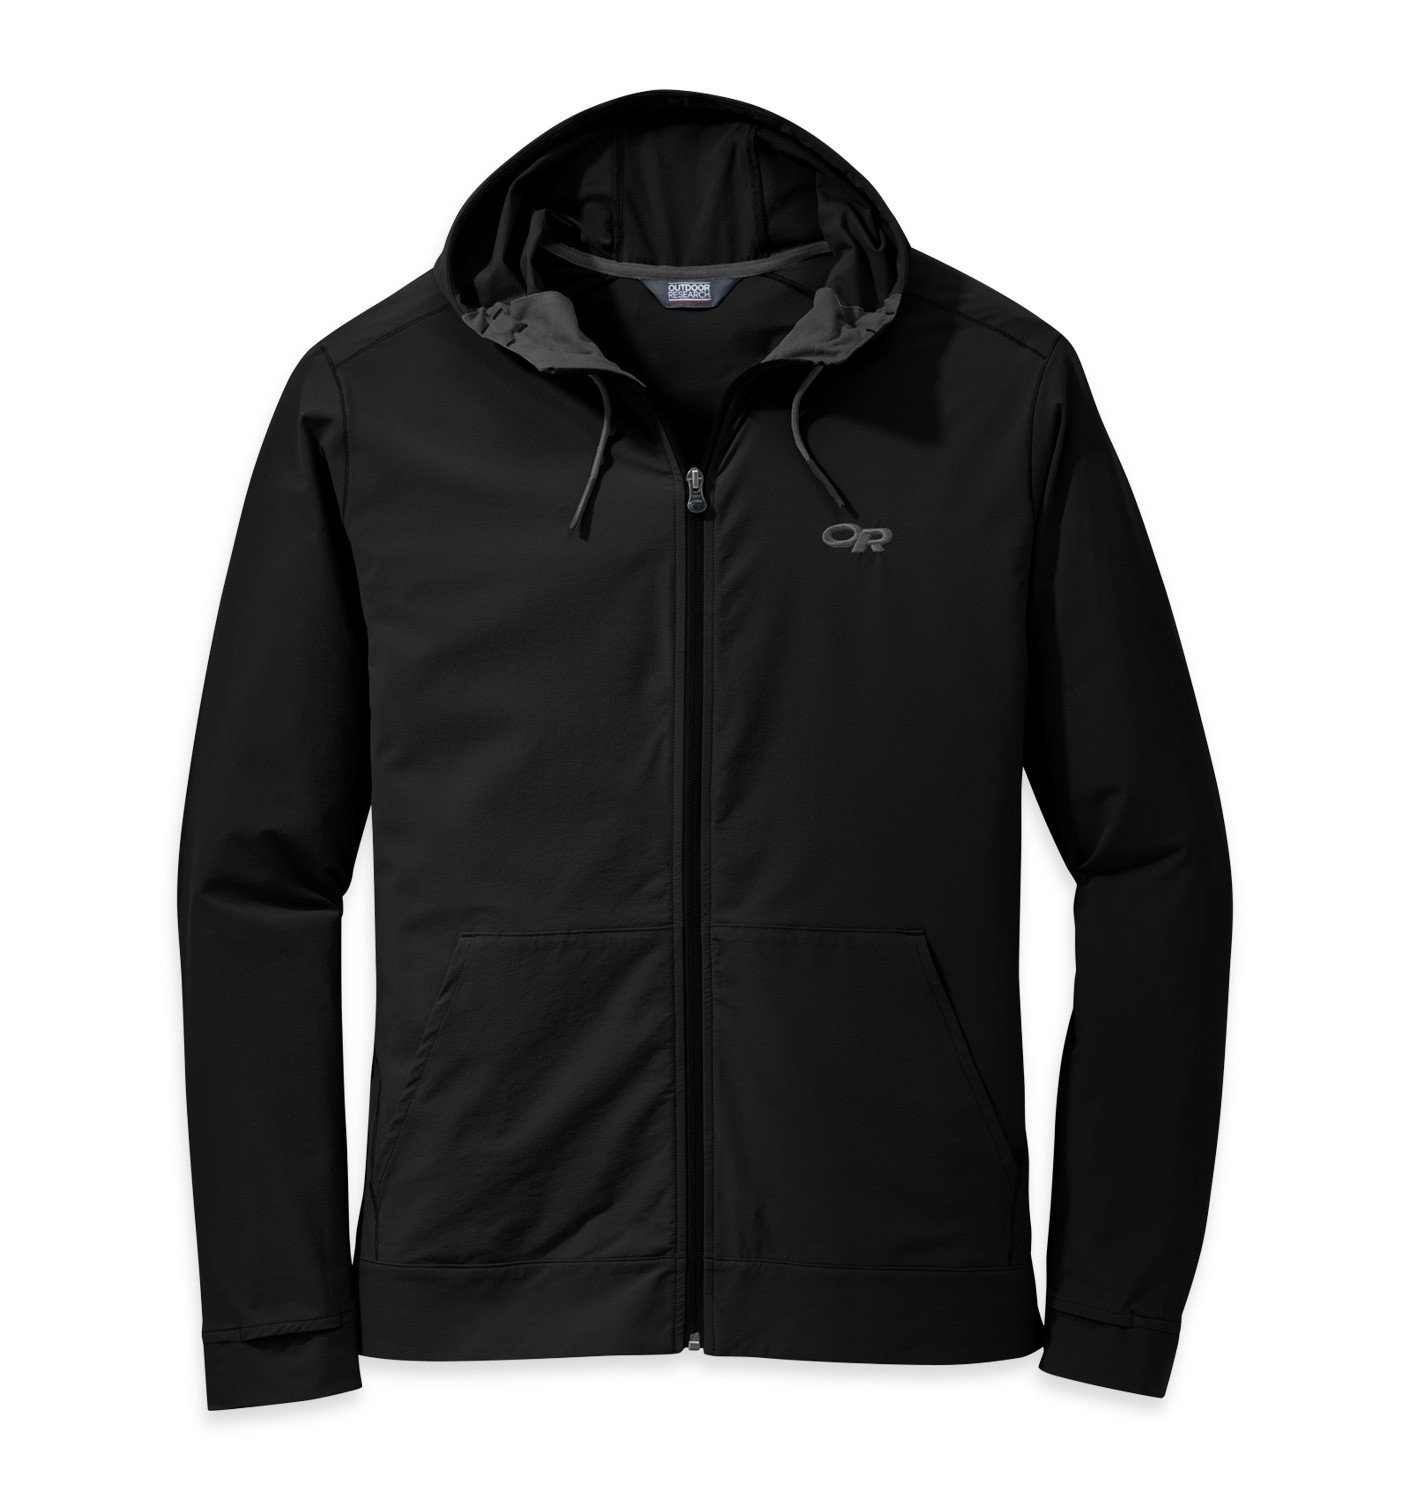 Outdoor Research Men's Ferrosi Crosstown Hoody, Black, Small by Outdoor Research